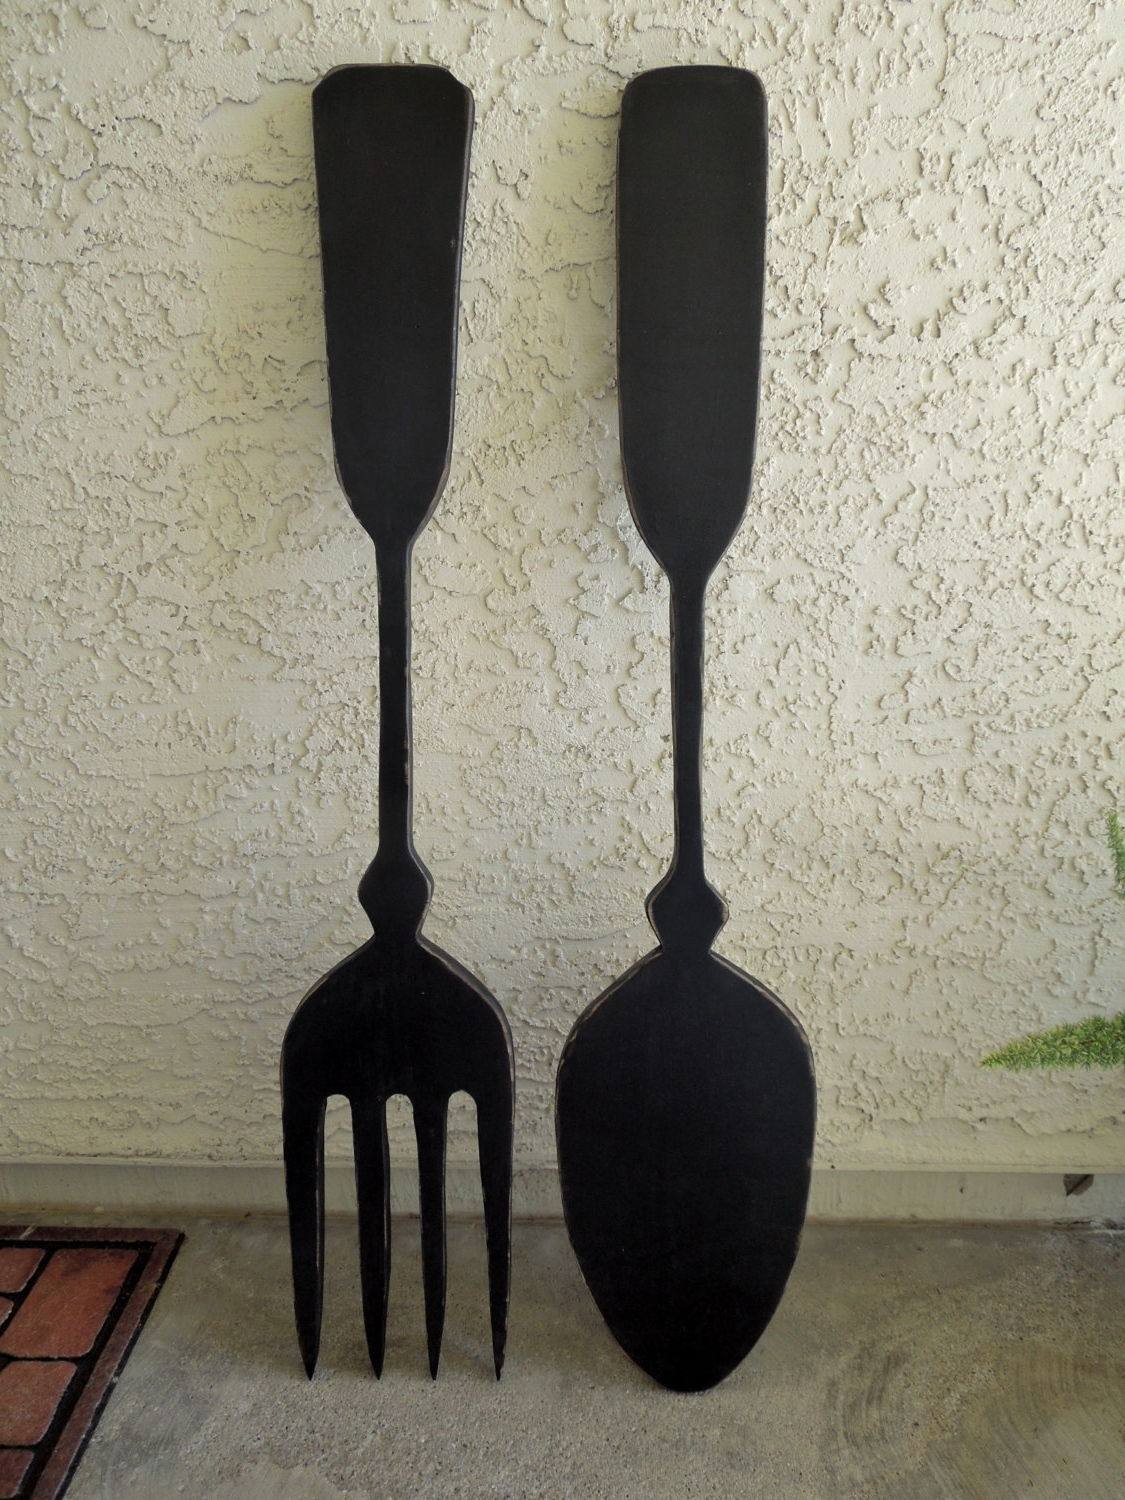 Preferred Big Wood Spoon And Fork Wall Decor For Your Kitchenjigsawjoe Pertaining To Large Utensil Wall Art (View 9 of 15)